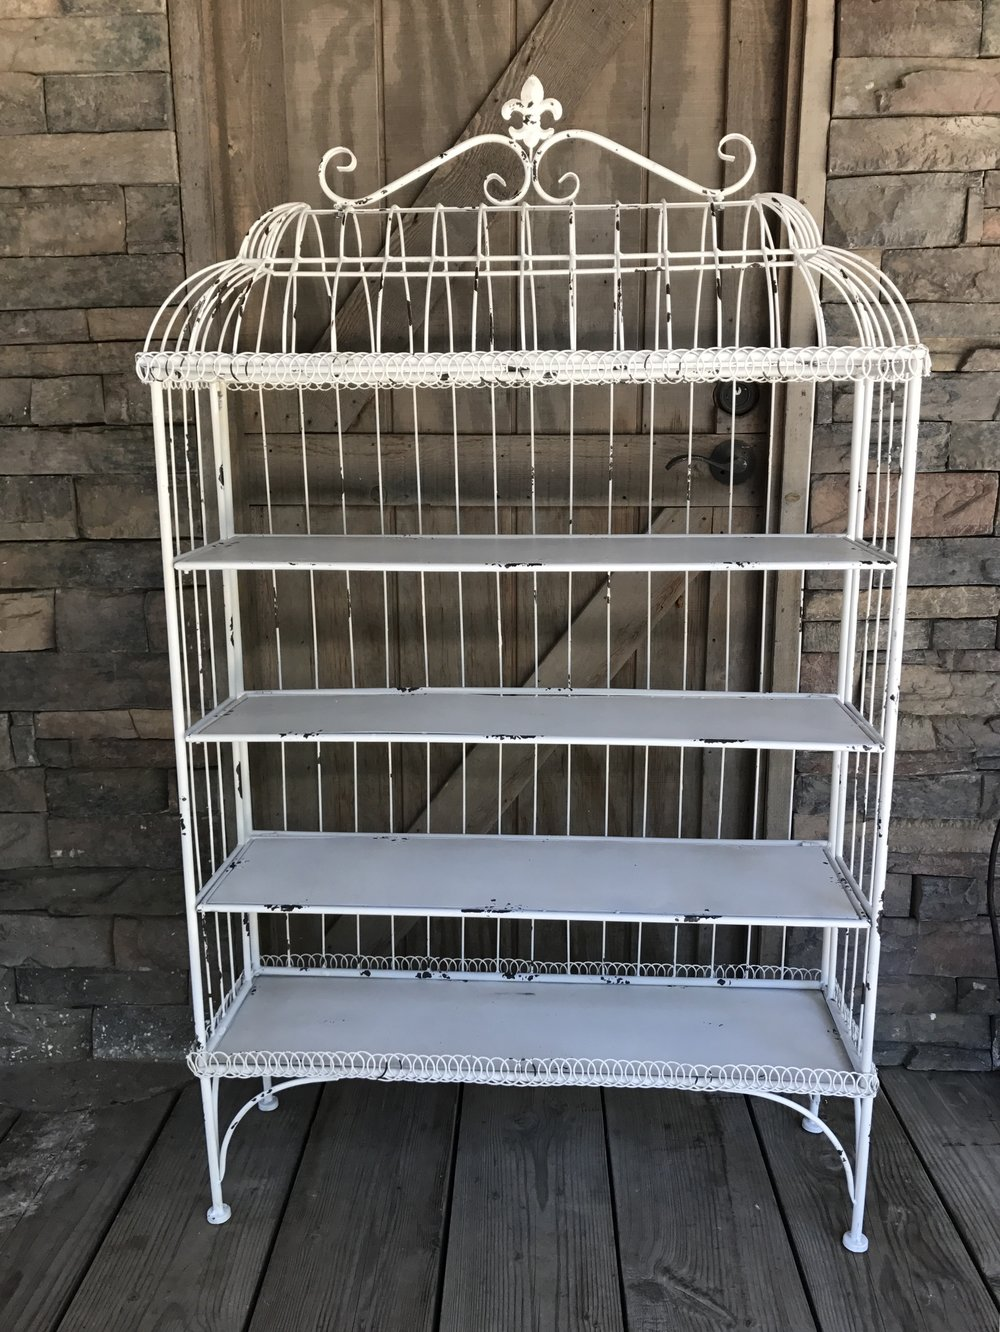 WHITE WIRE DISPLAY SHELF - $100